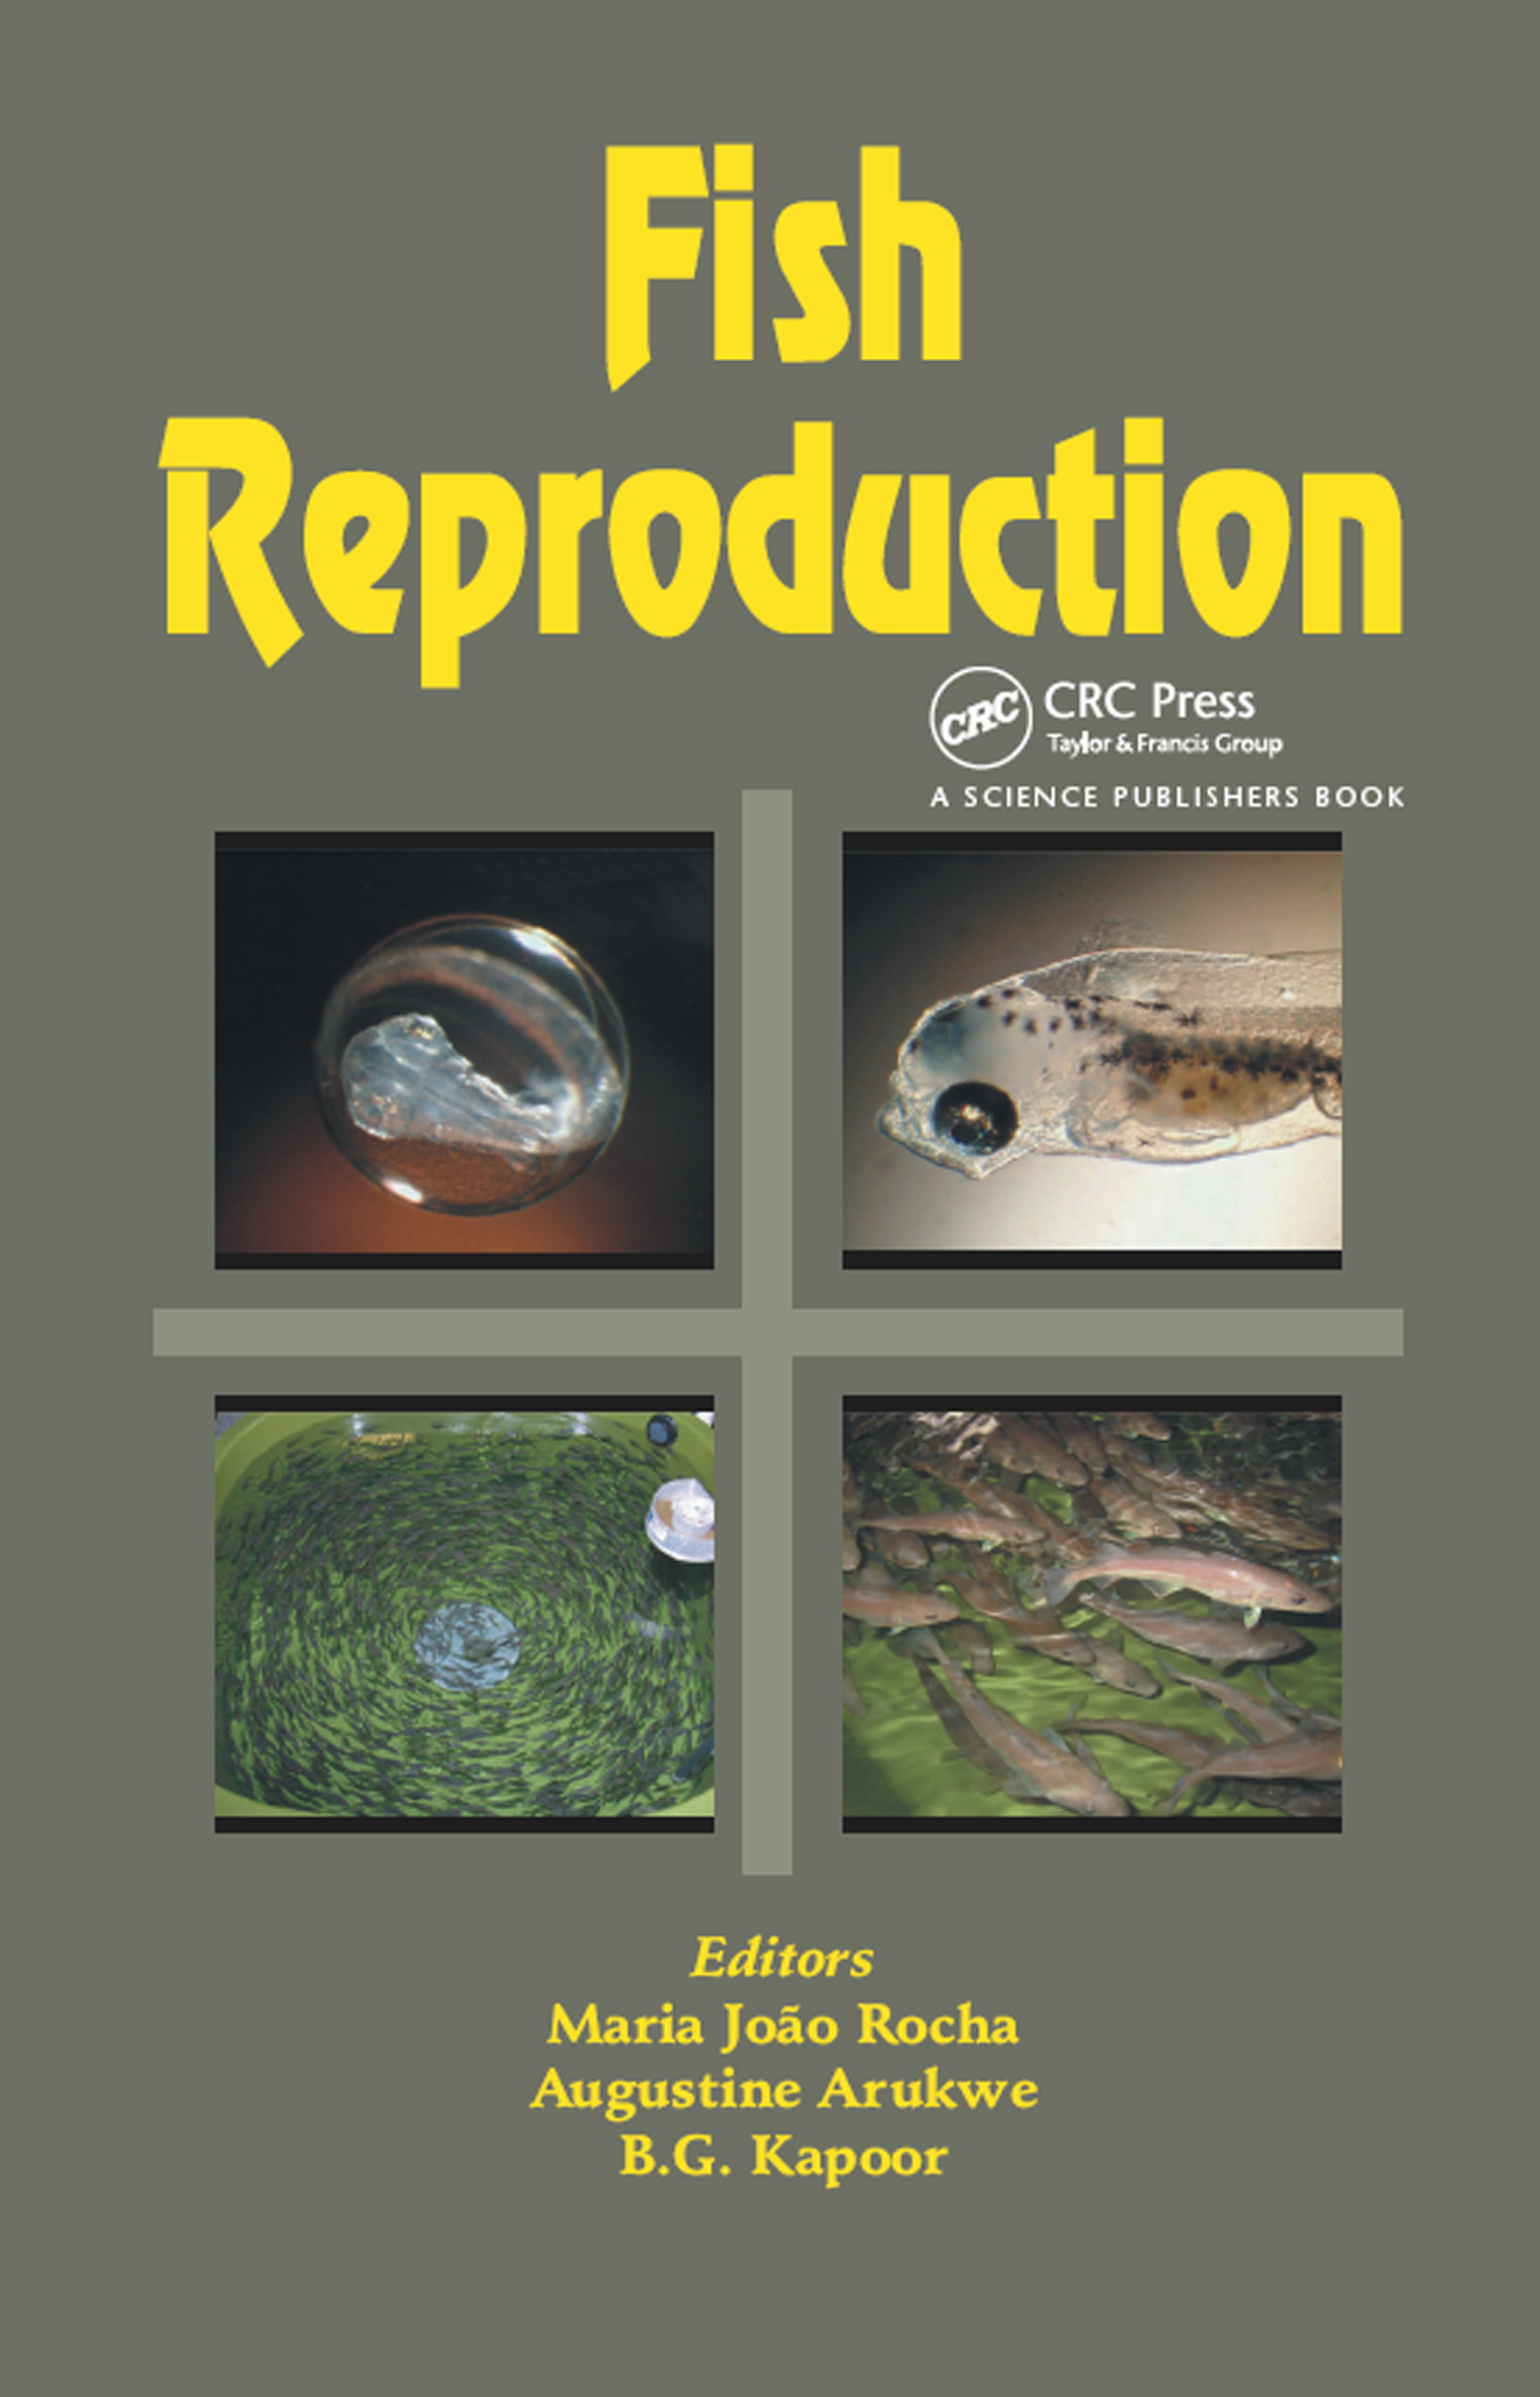 Fish Reproduction in Relation to Aquaculture